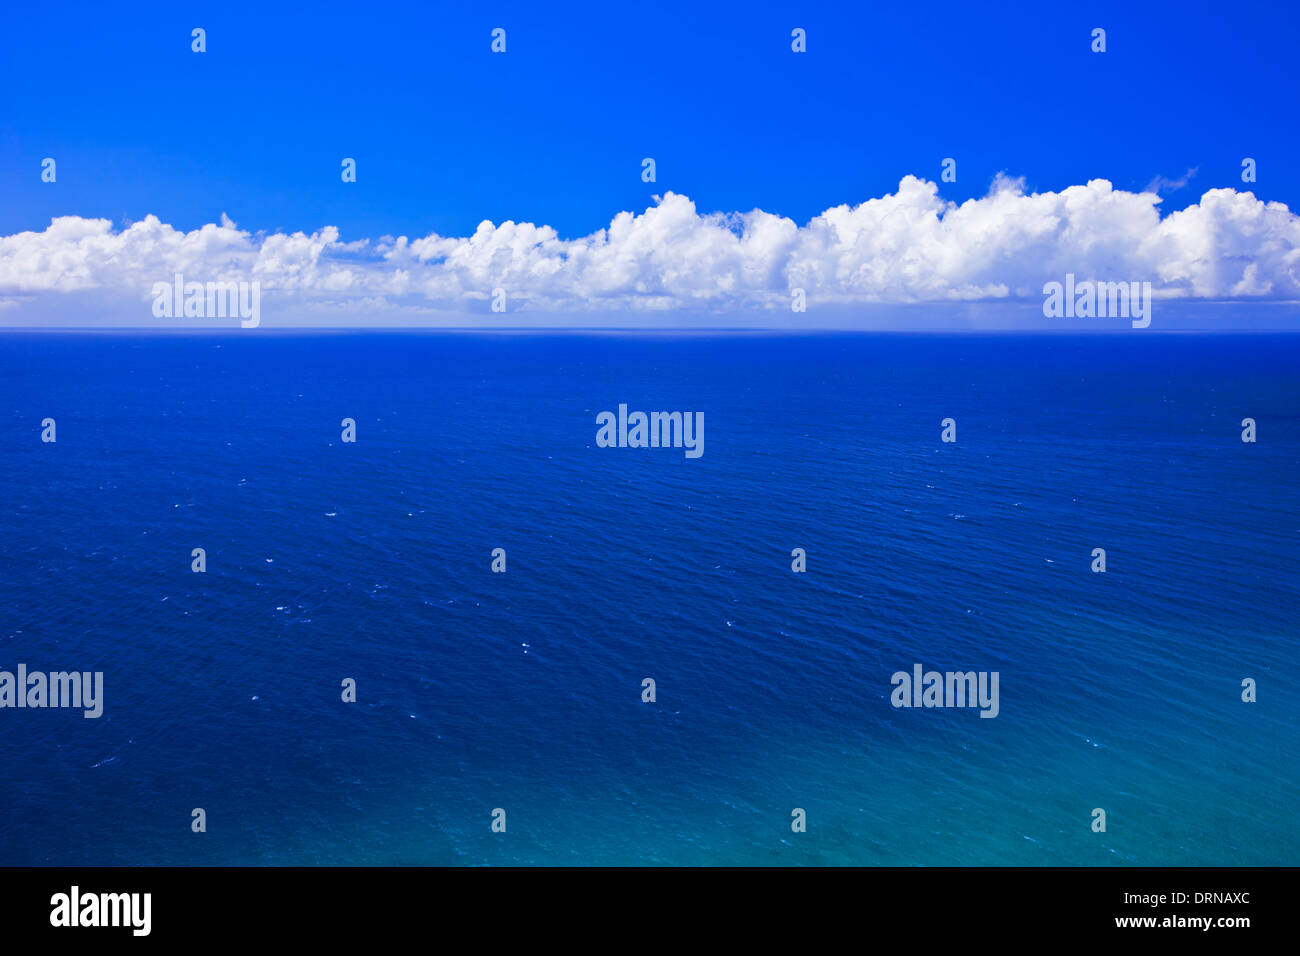 Tropical Ocean and Blue sky with White Clouds - Stock Image